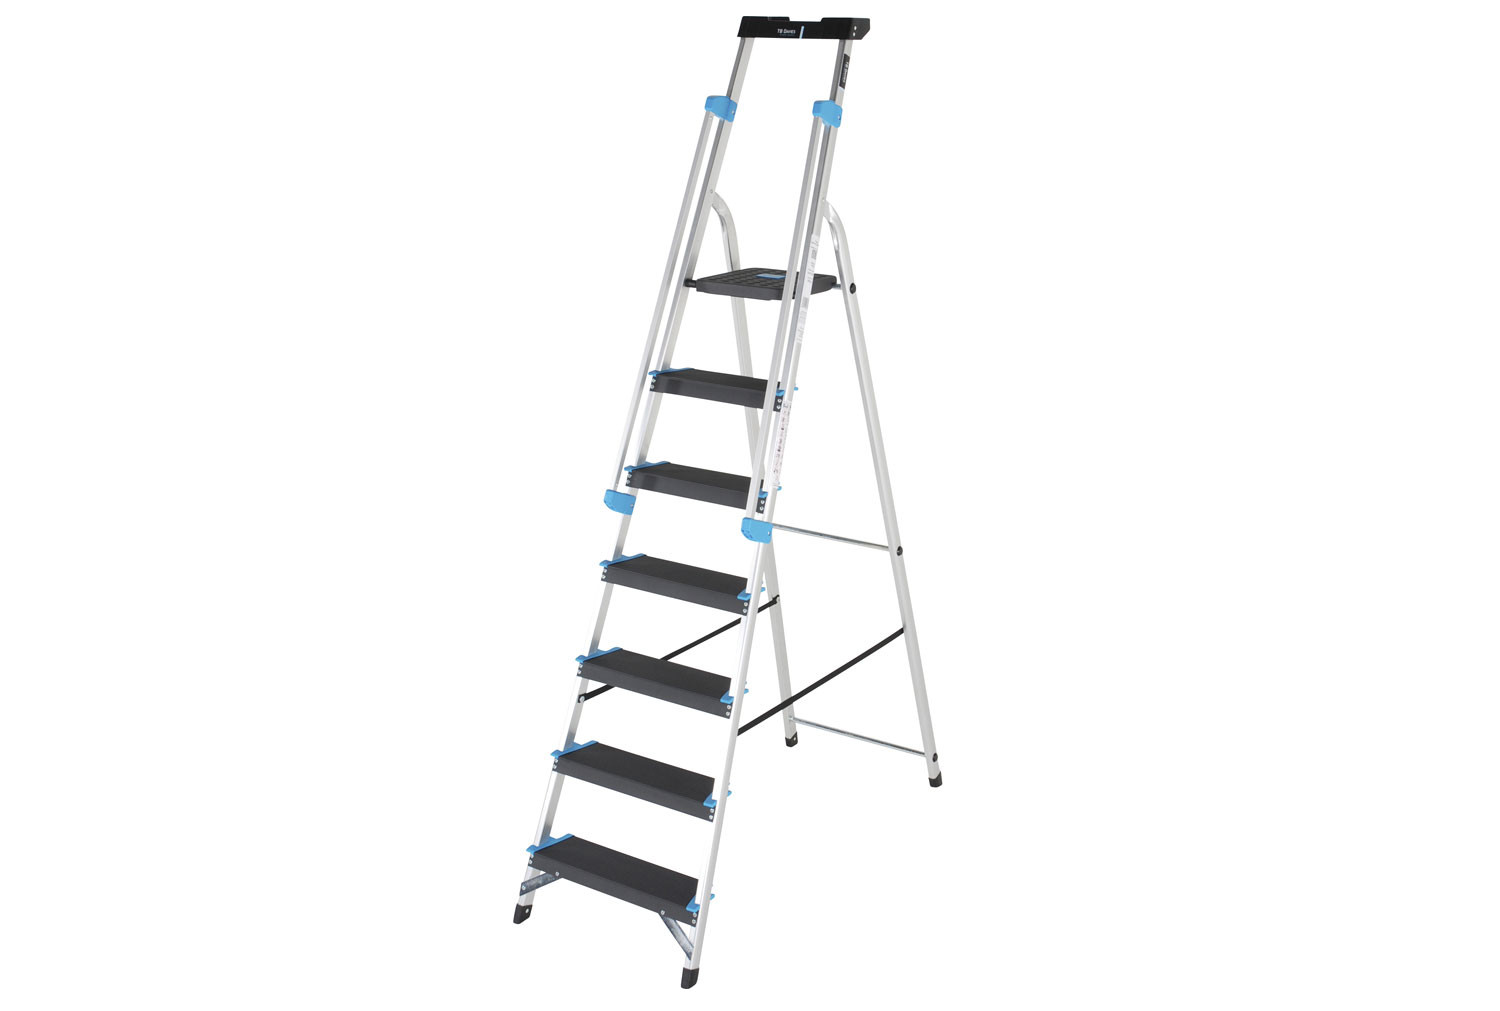 Premier XL Platform Step Ladders